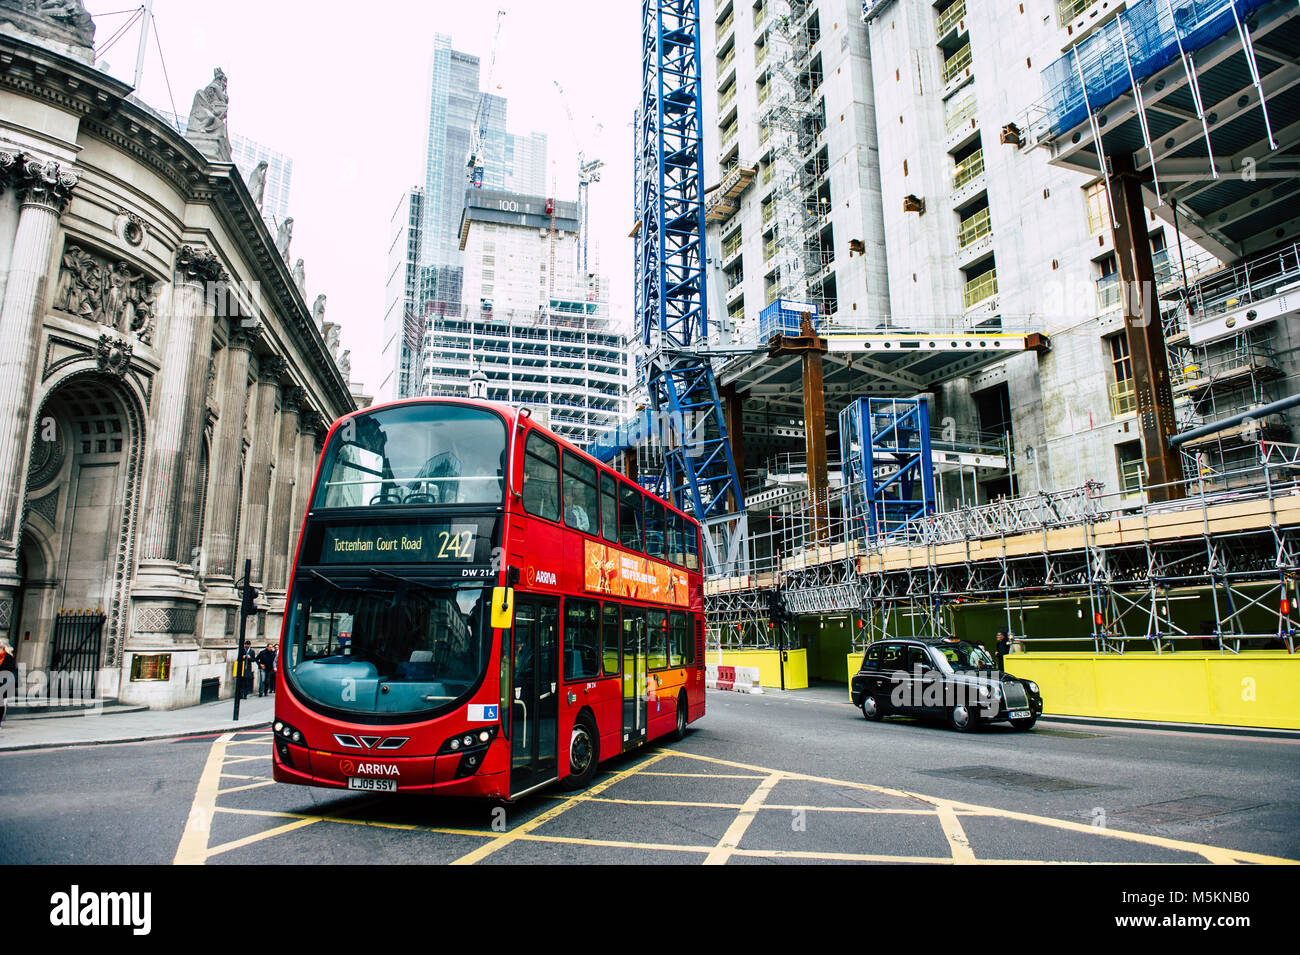 A bus turns toward Bank Junction in the City of London - Stock Image